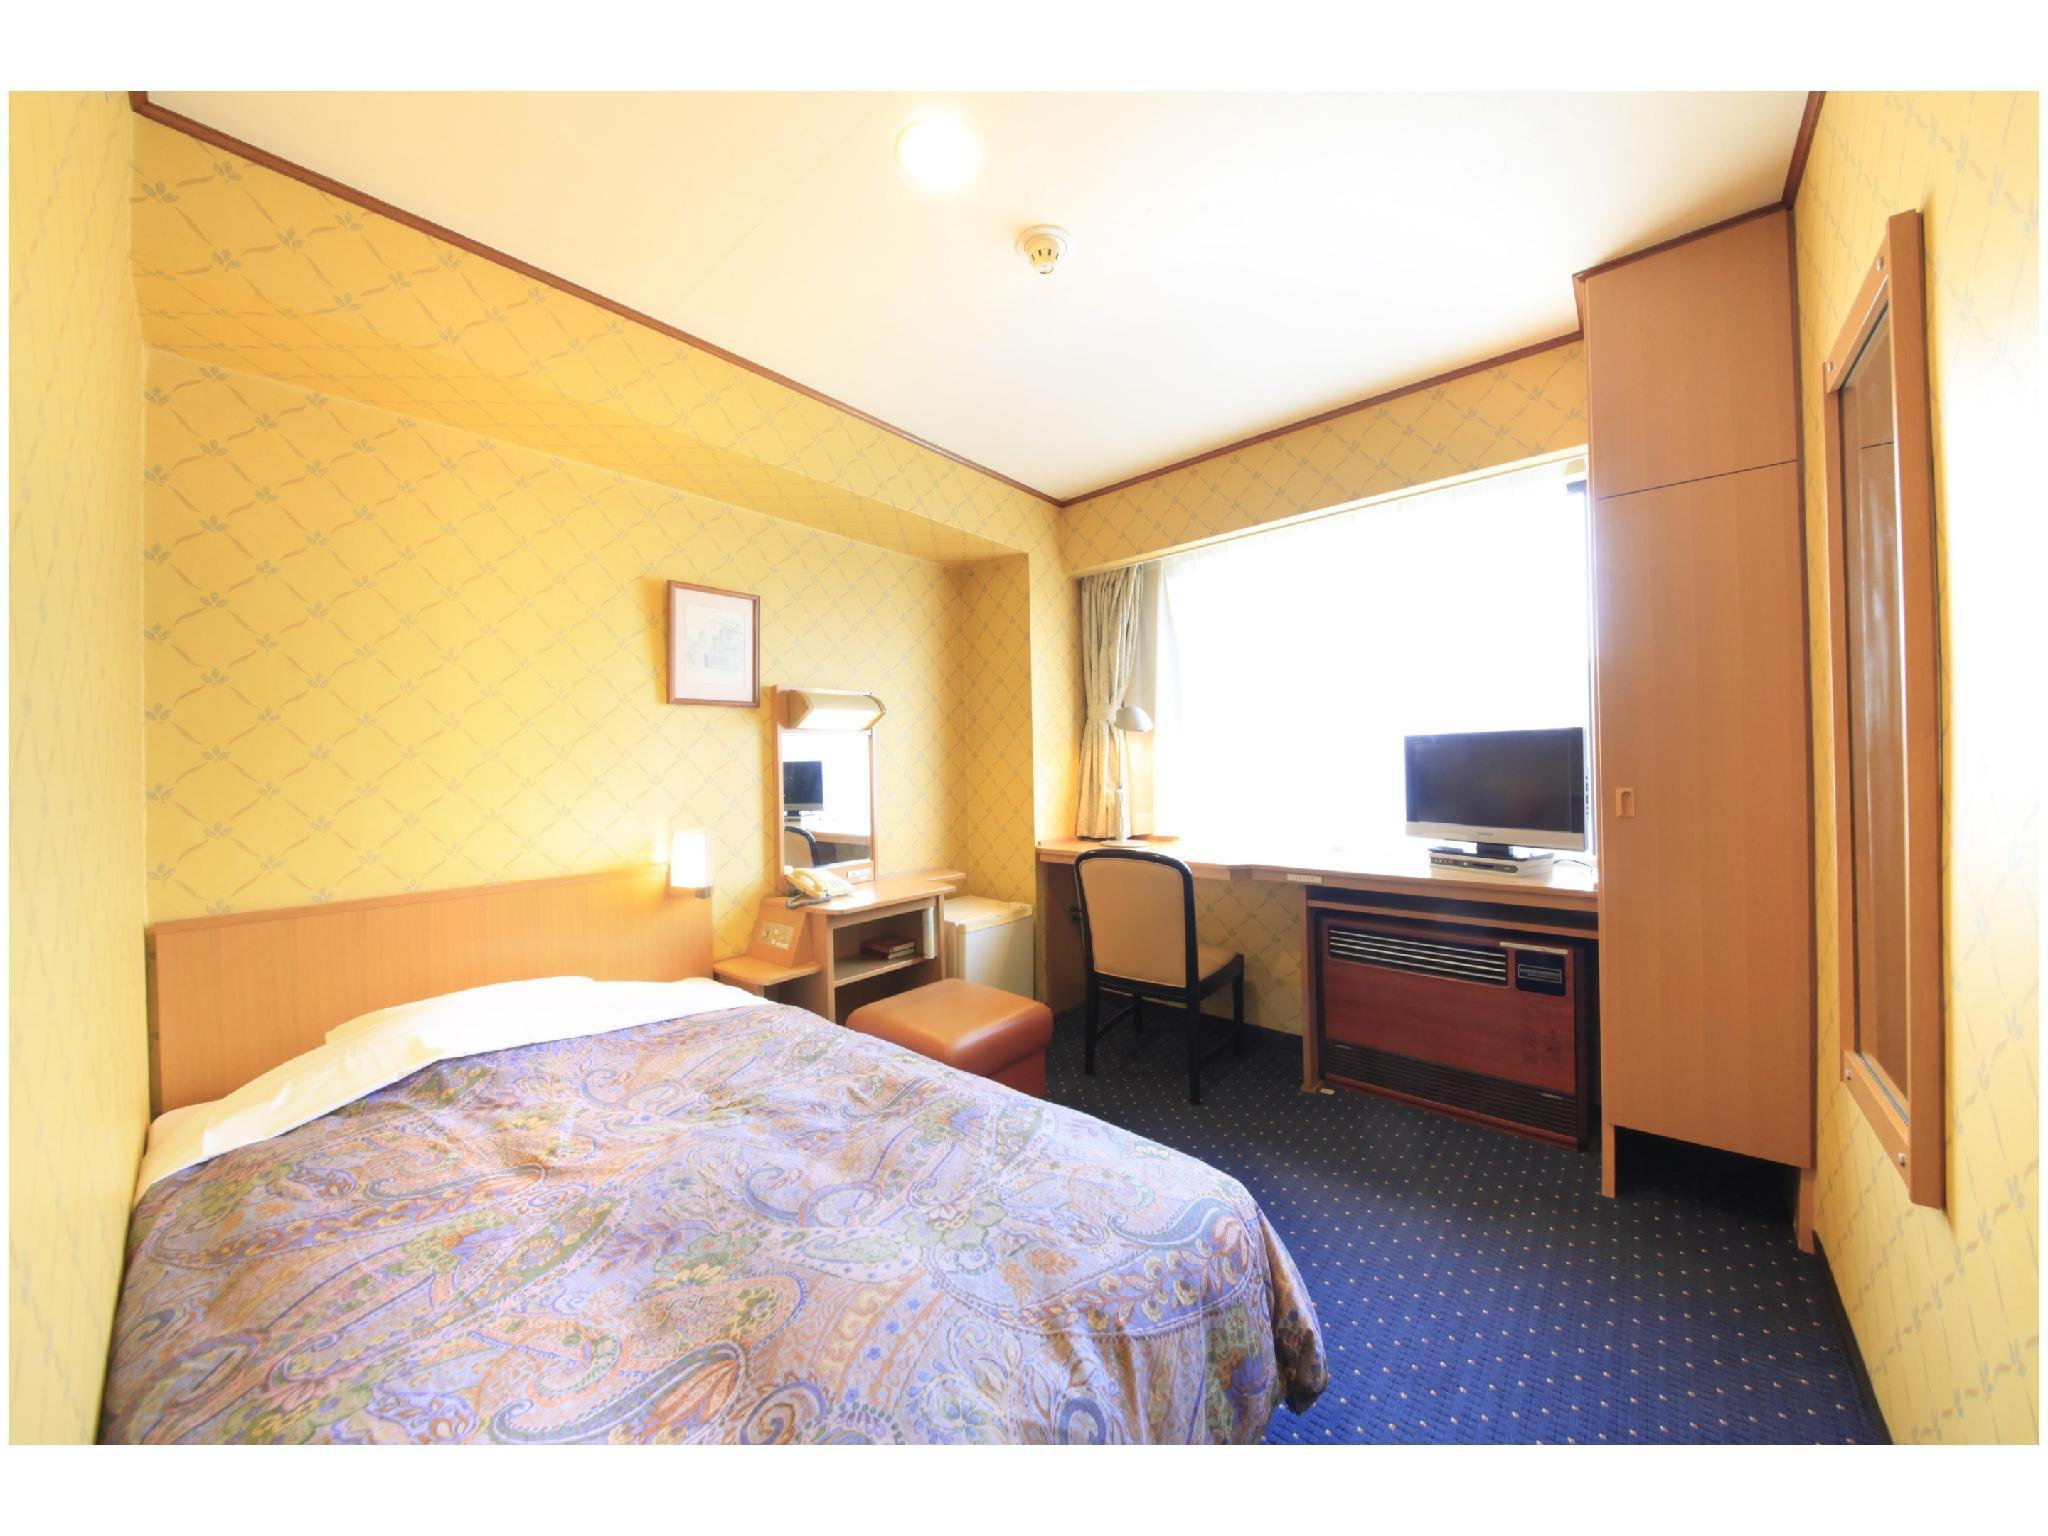 Deluxe Single Room (Type B)